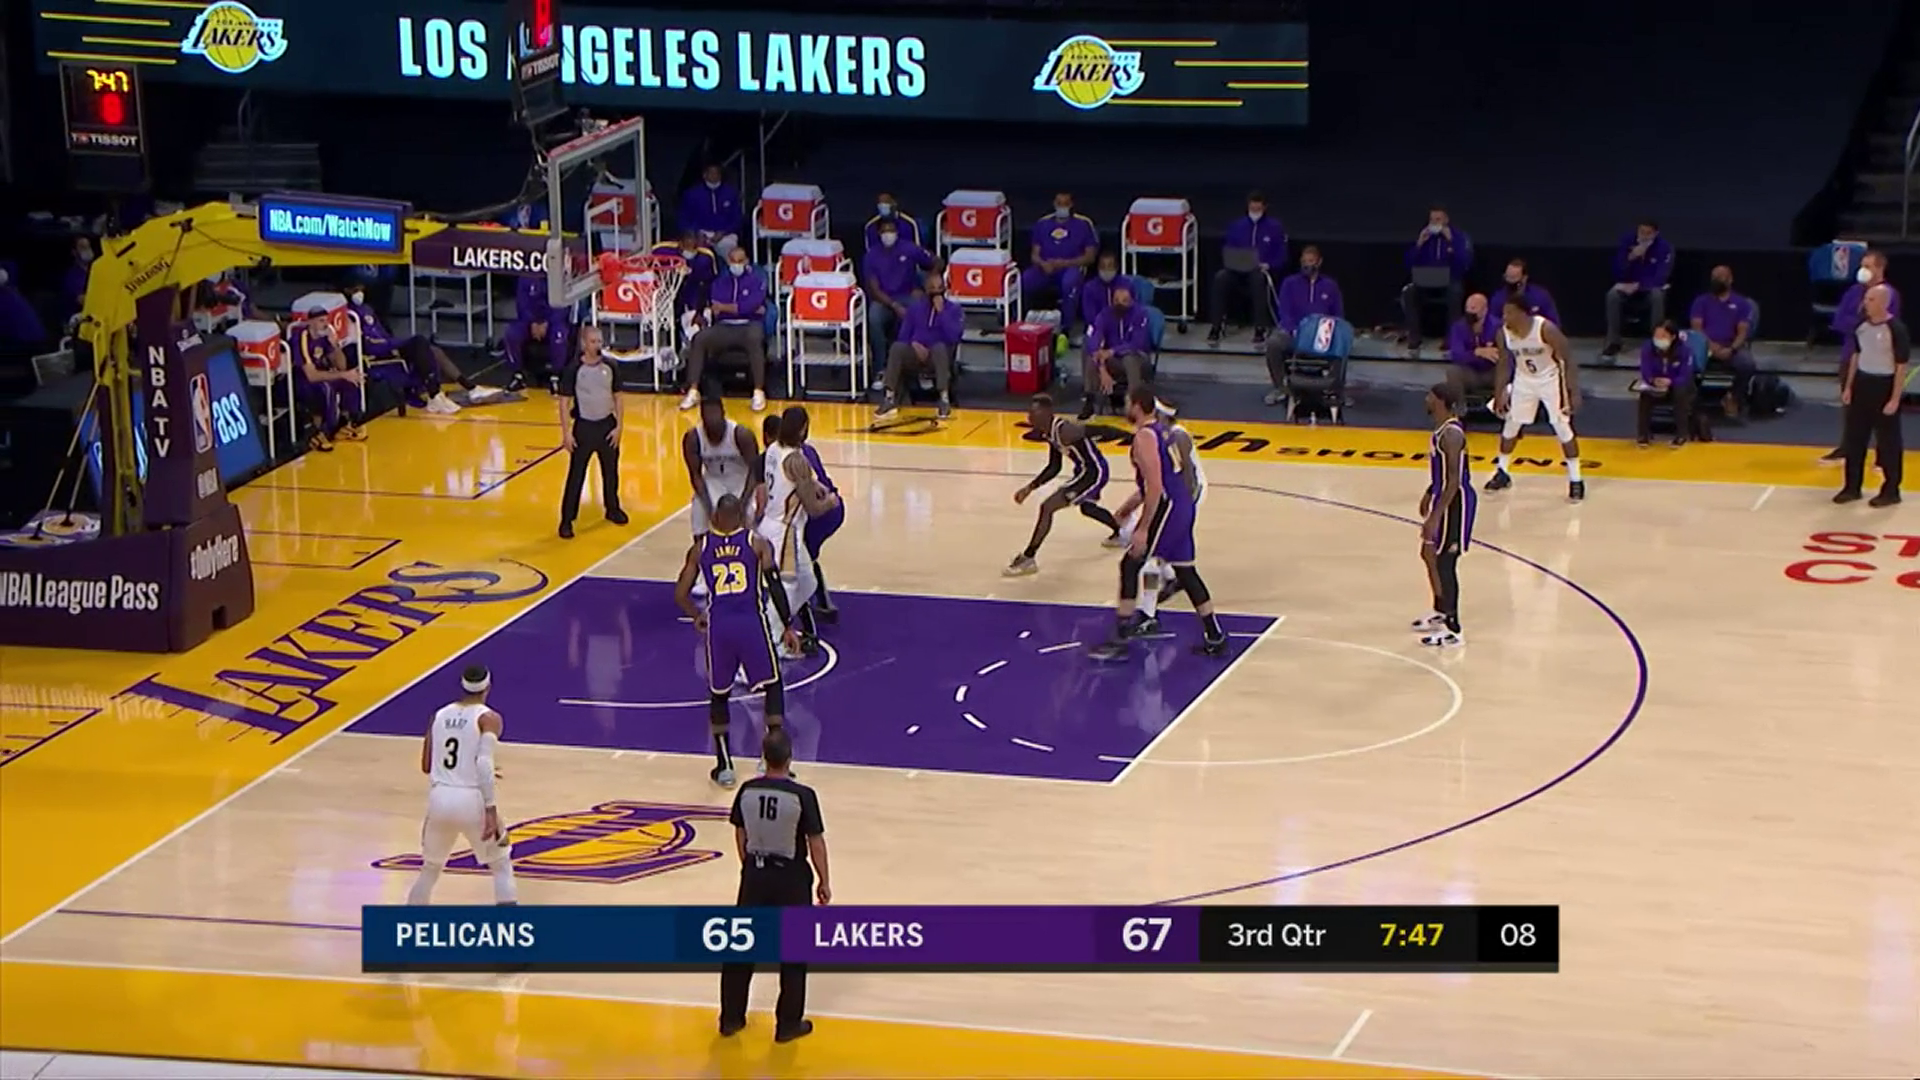 Pelicans-Lakers Highlights: Zion Williamson double-clutch slam